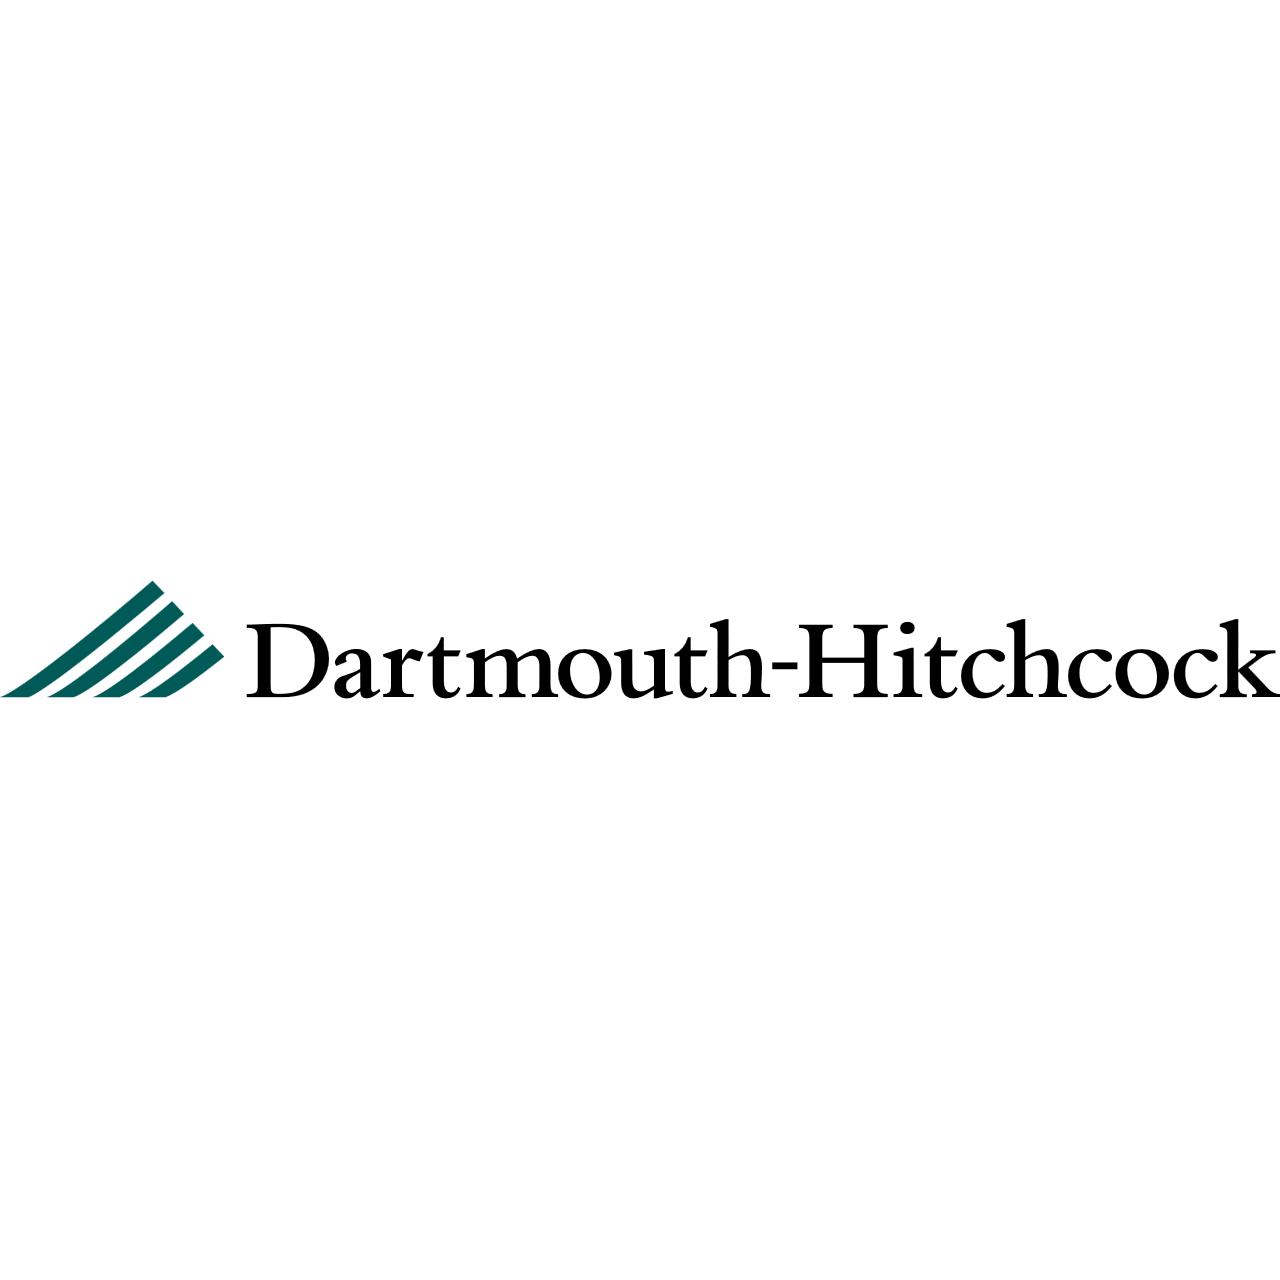 Dartmouth-Hitchcock Merrimack